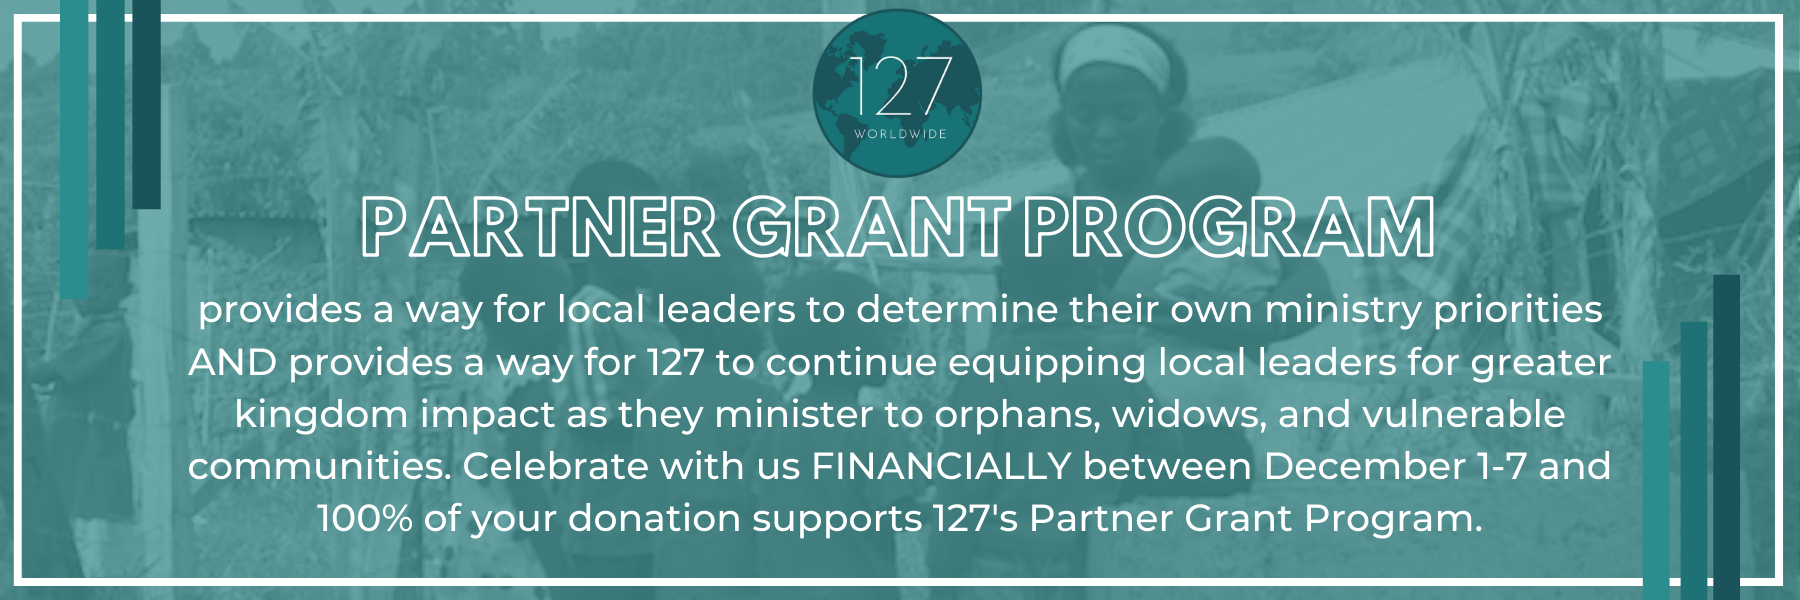 Partner Grant Synopsis